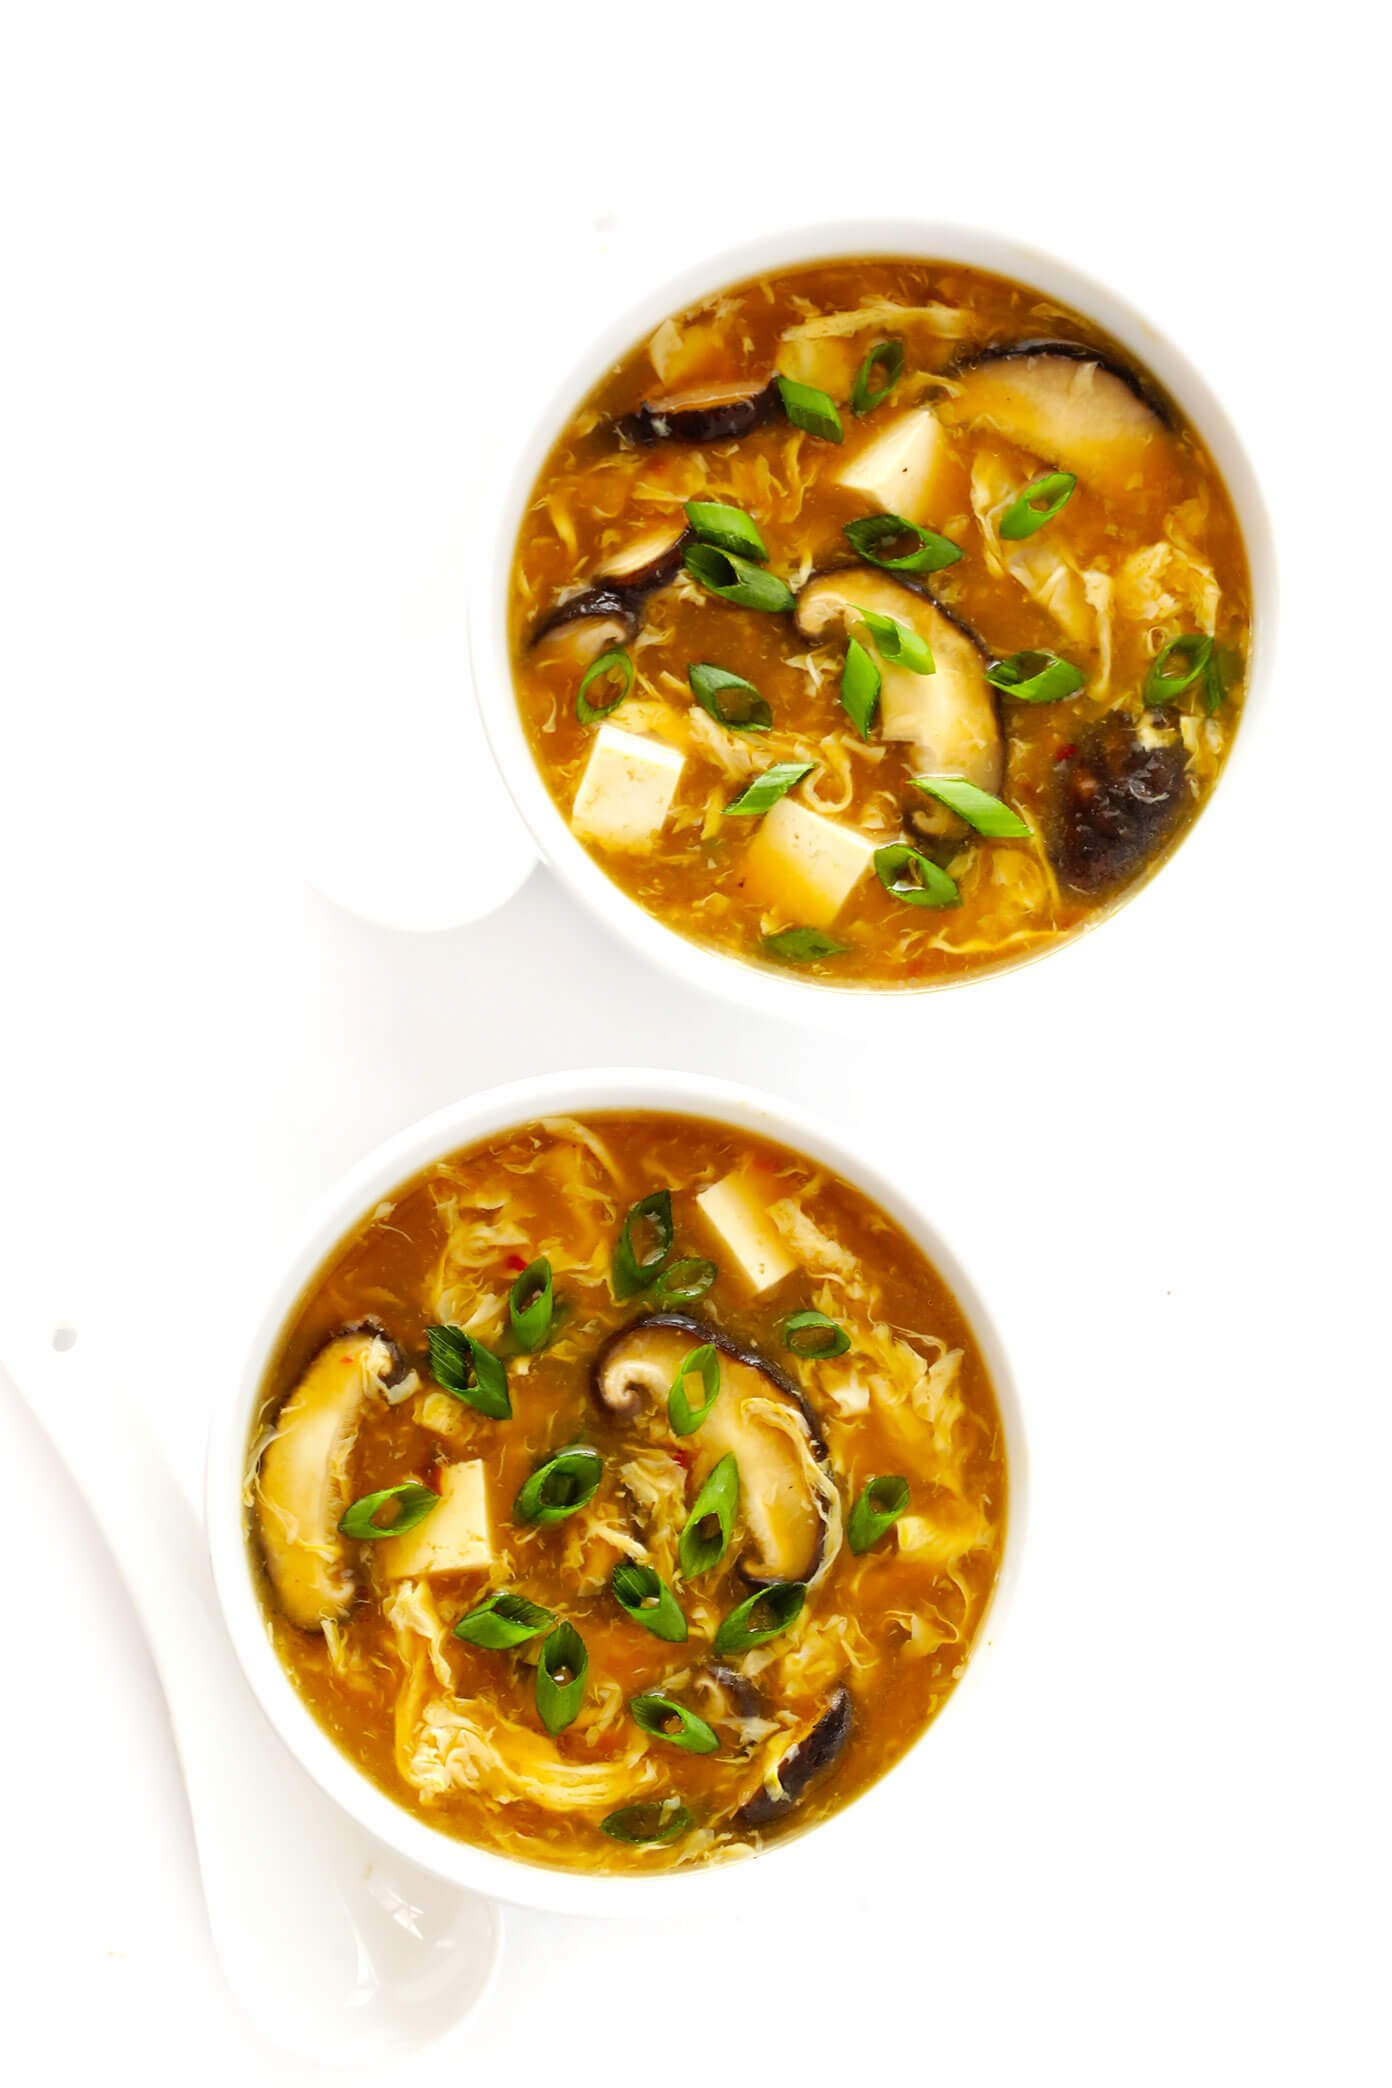 Hot and Sour Soup Recipe with Mushrooms and Tofu